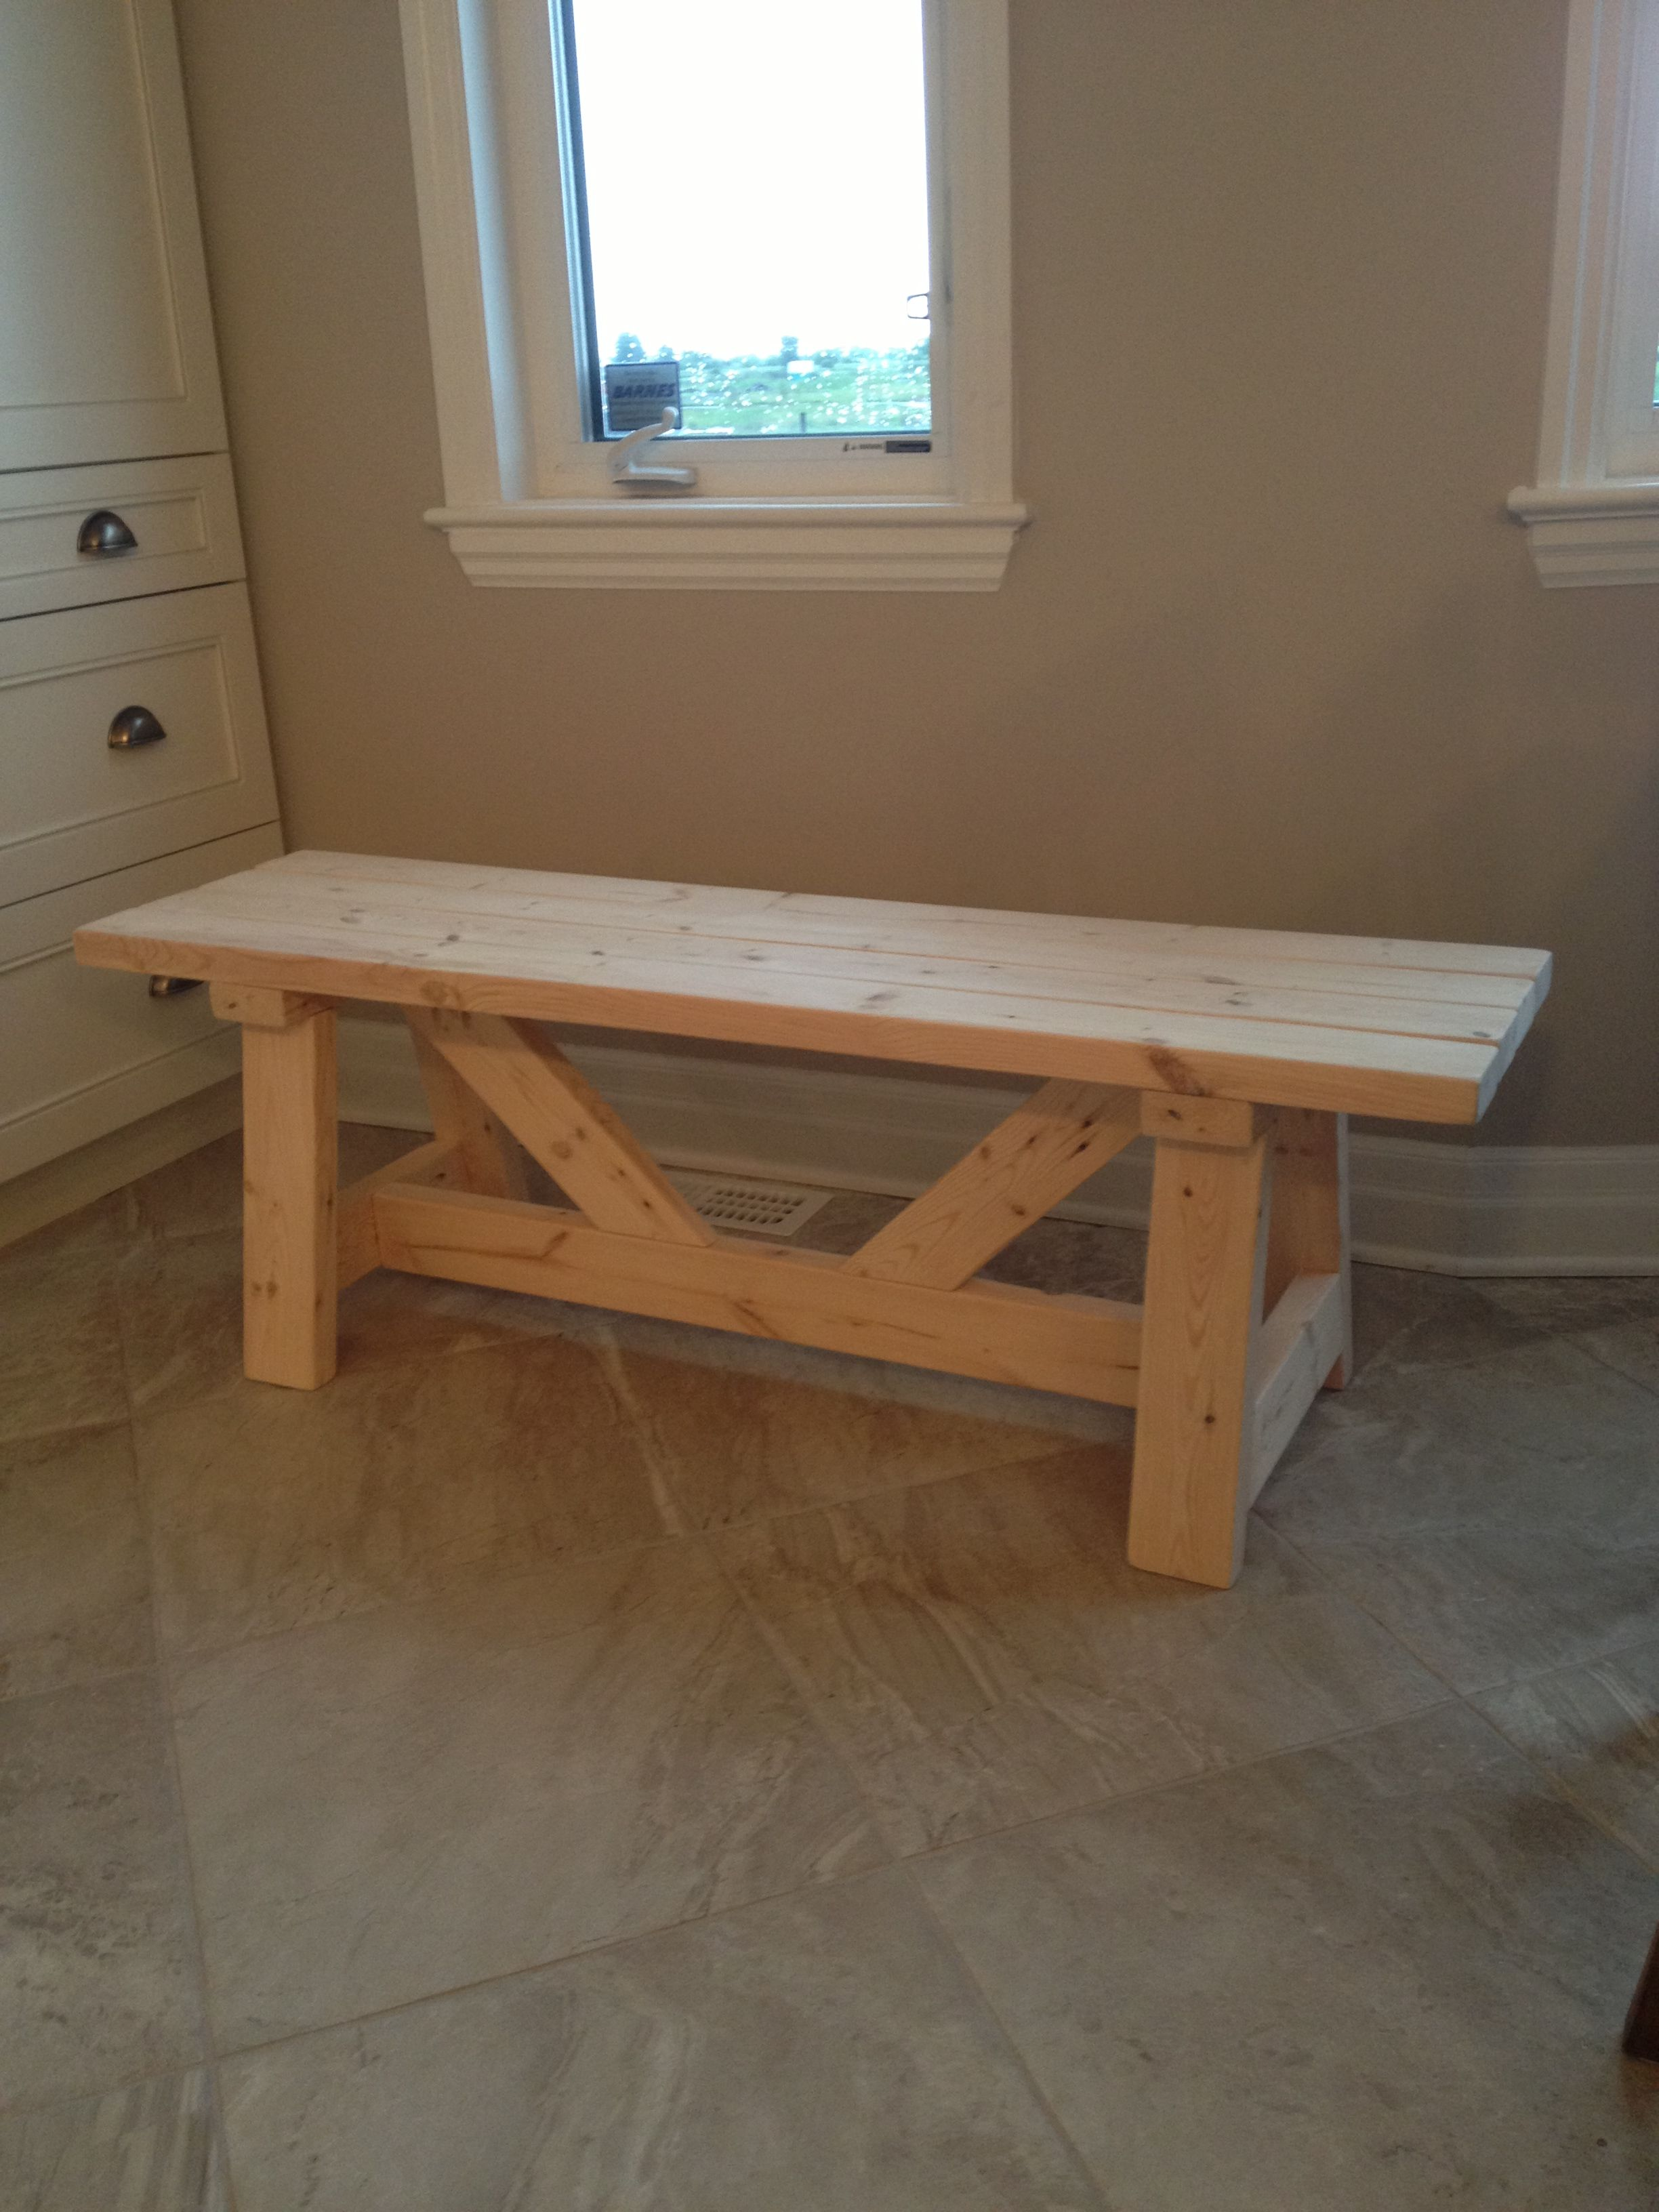 Do Yourself Home Improvement Project Farmhouse Bench In 1 Day Do It Yourself Home Projects